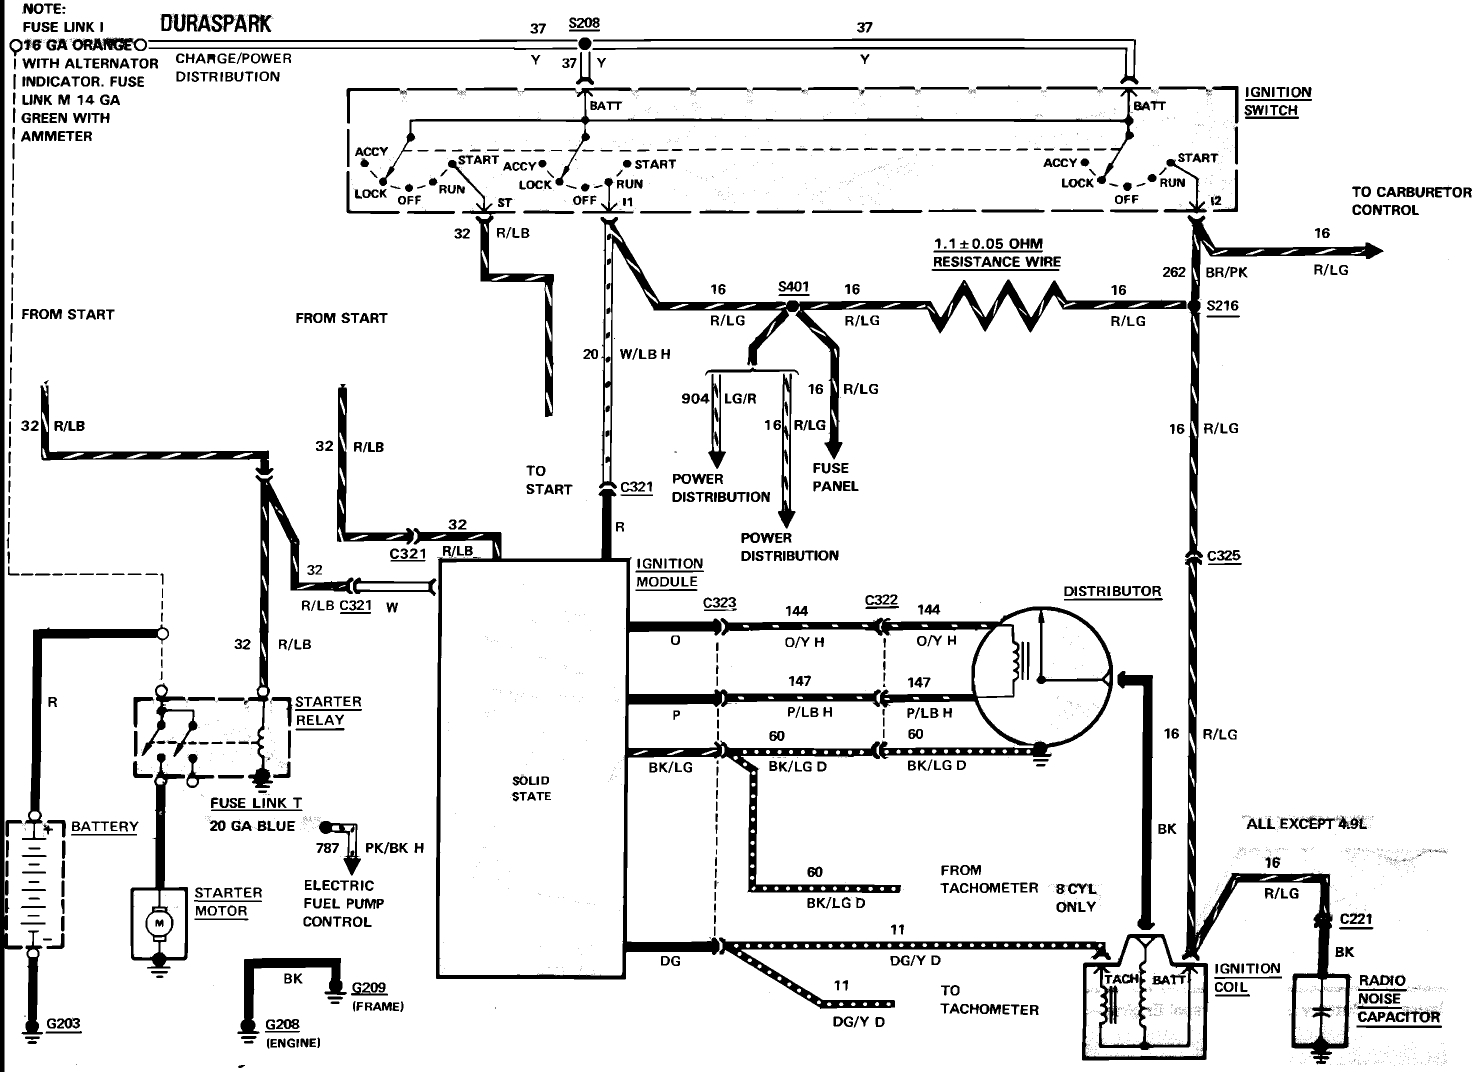 1989 ford f150 ignition wiring diagram | free wiring diagram 1989 ford e40d wiring diagram 1989 ford alt wiring diagram